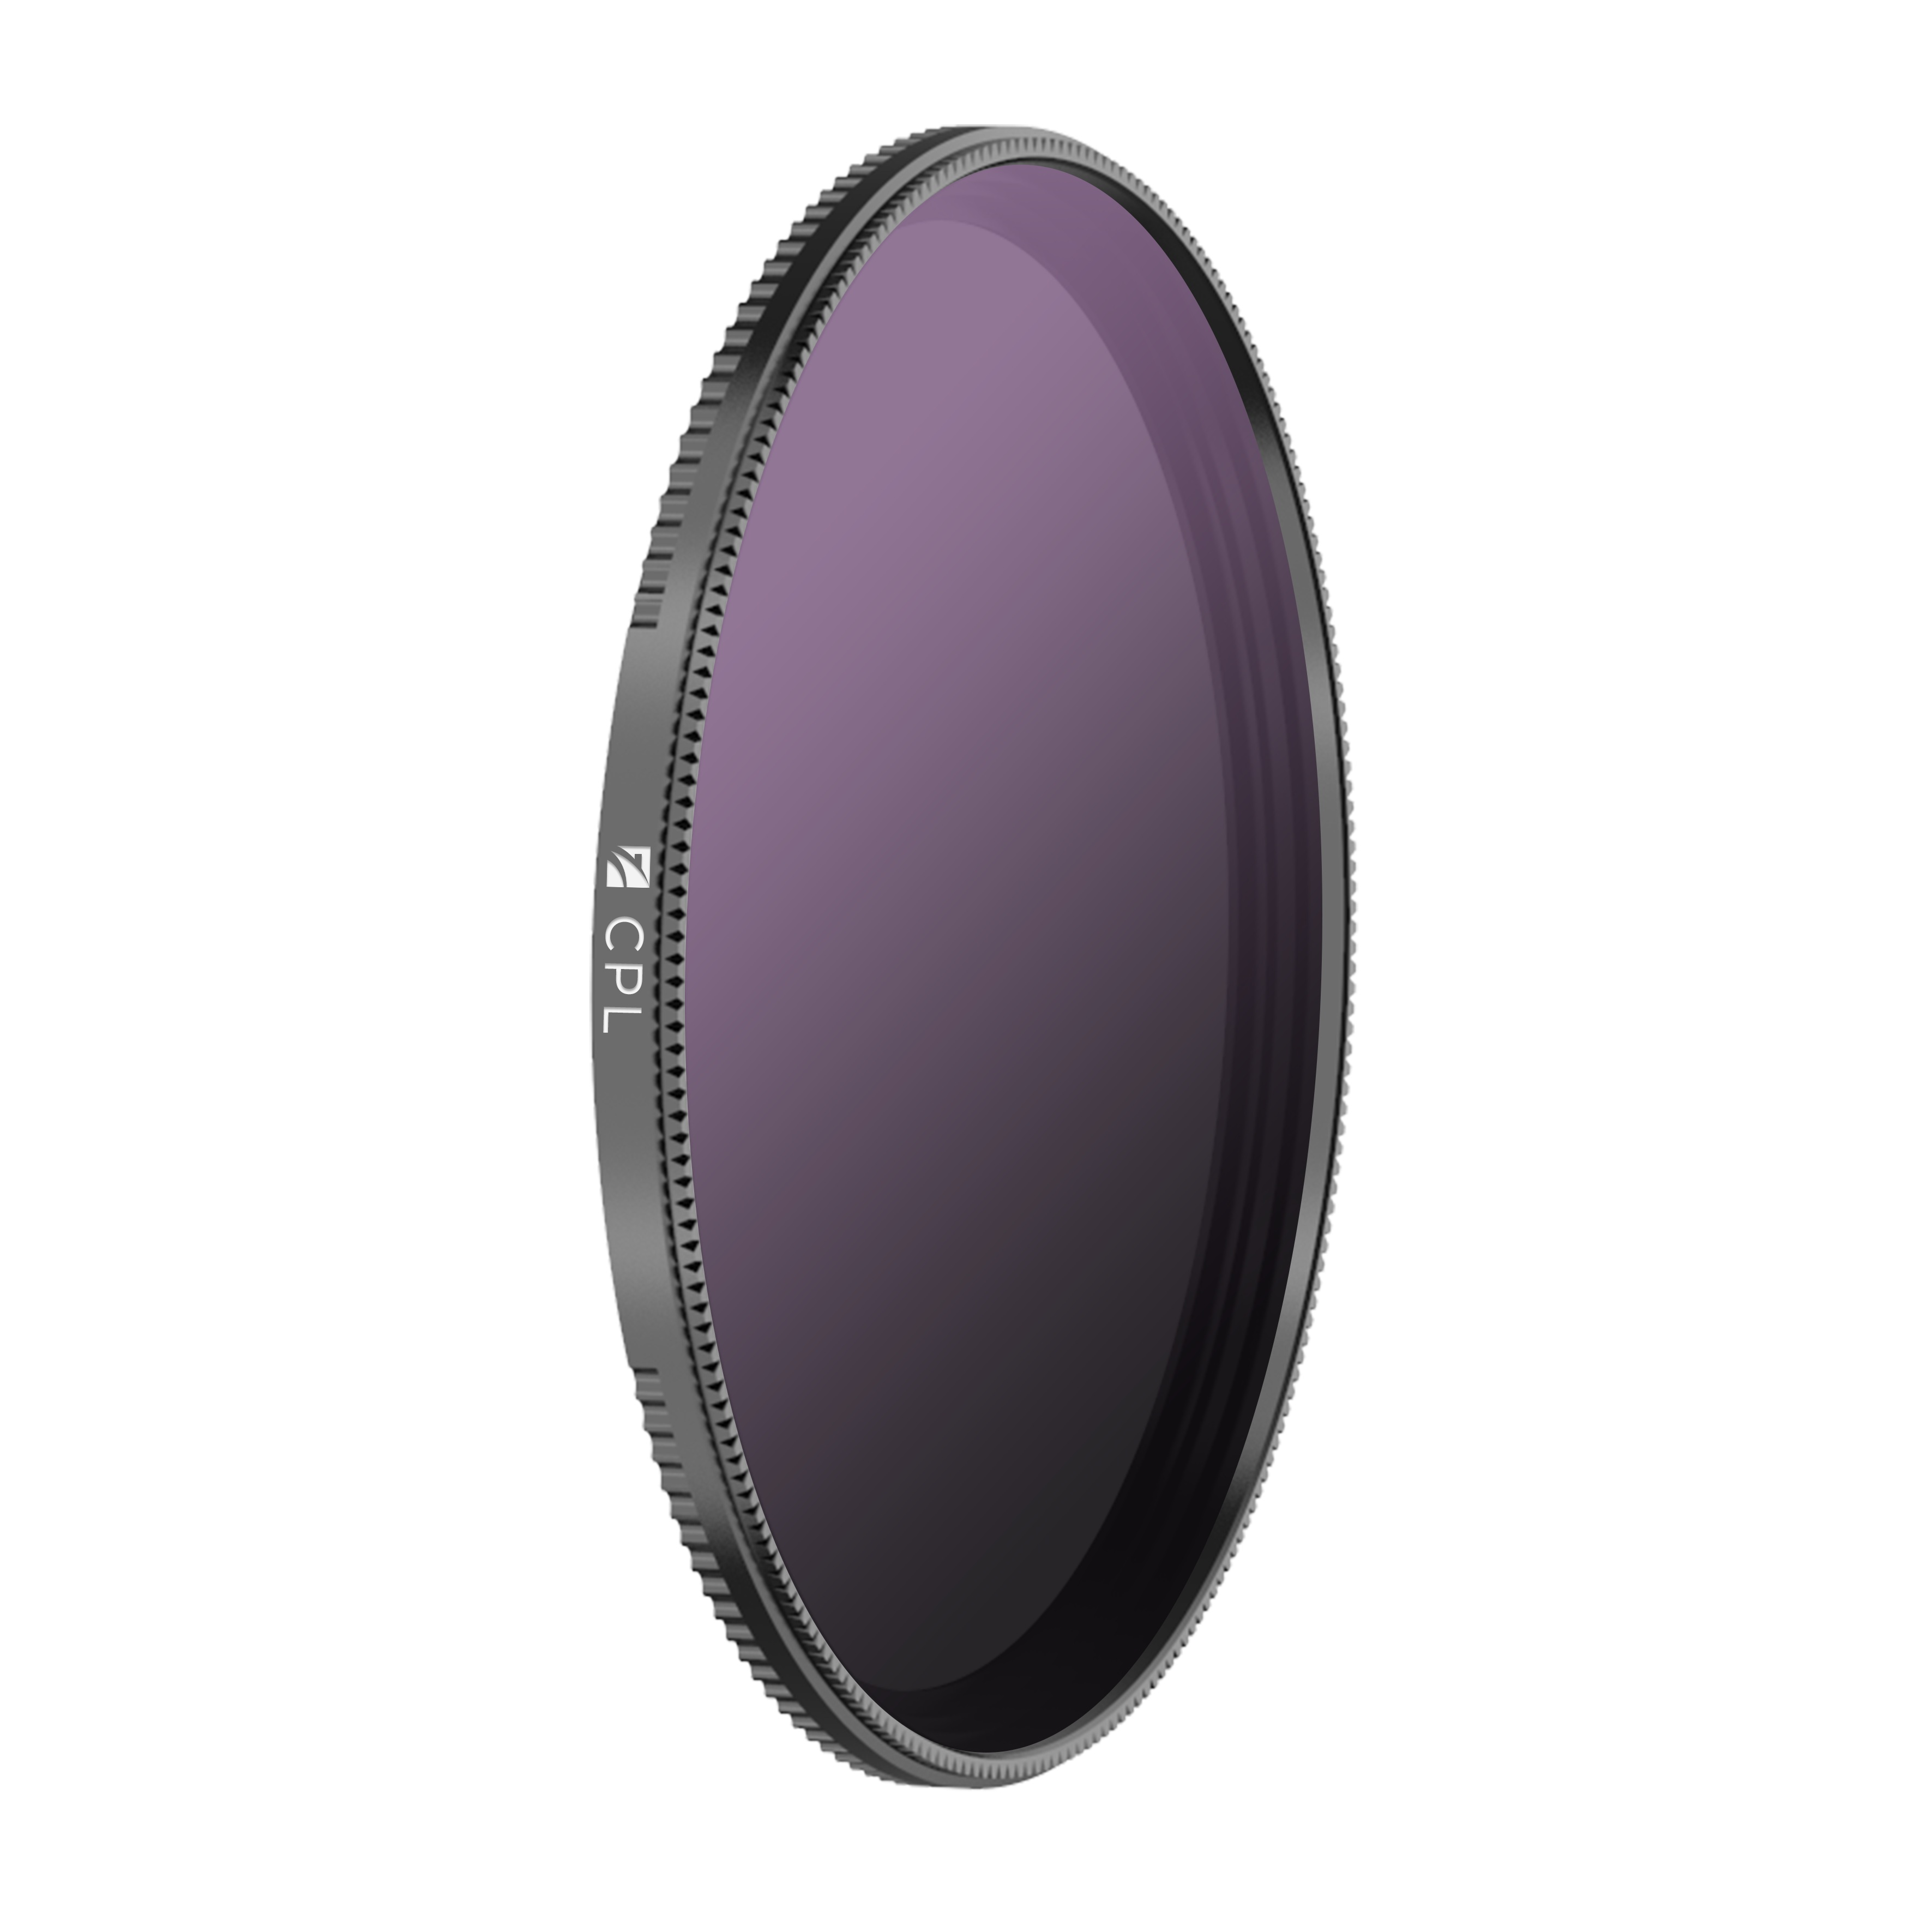 4 f-Stops Freewell Magnetic Quick Swap System 72mm Netural Density ND16 Camera Filter